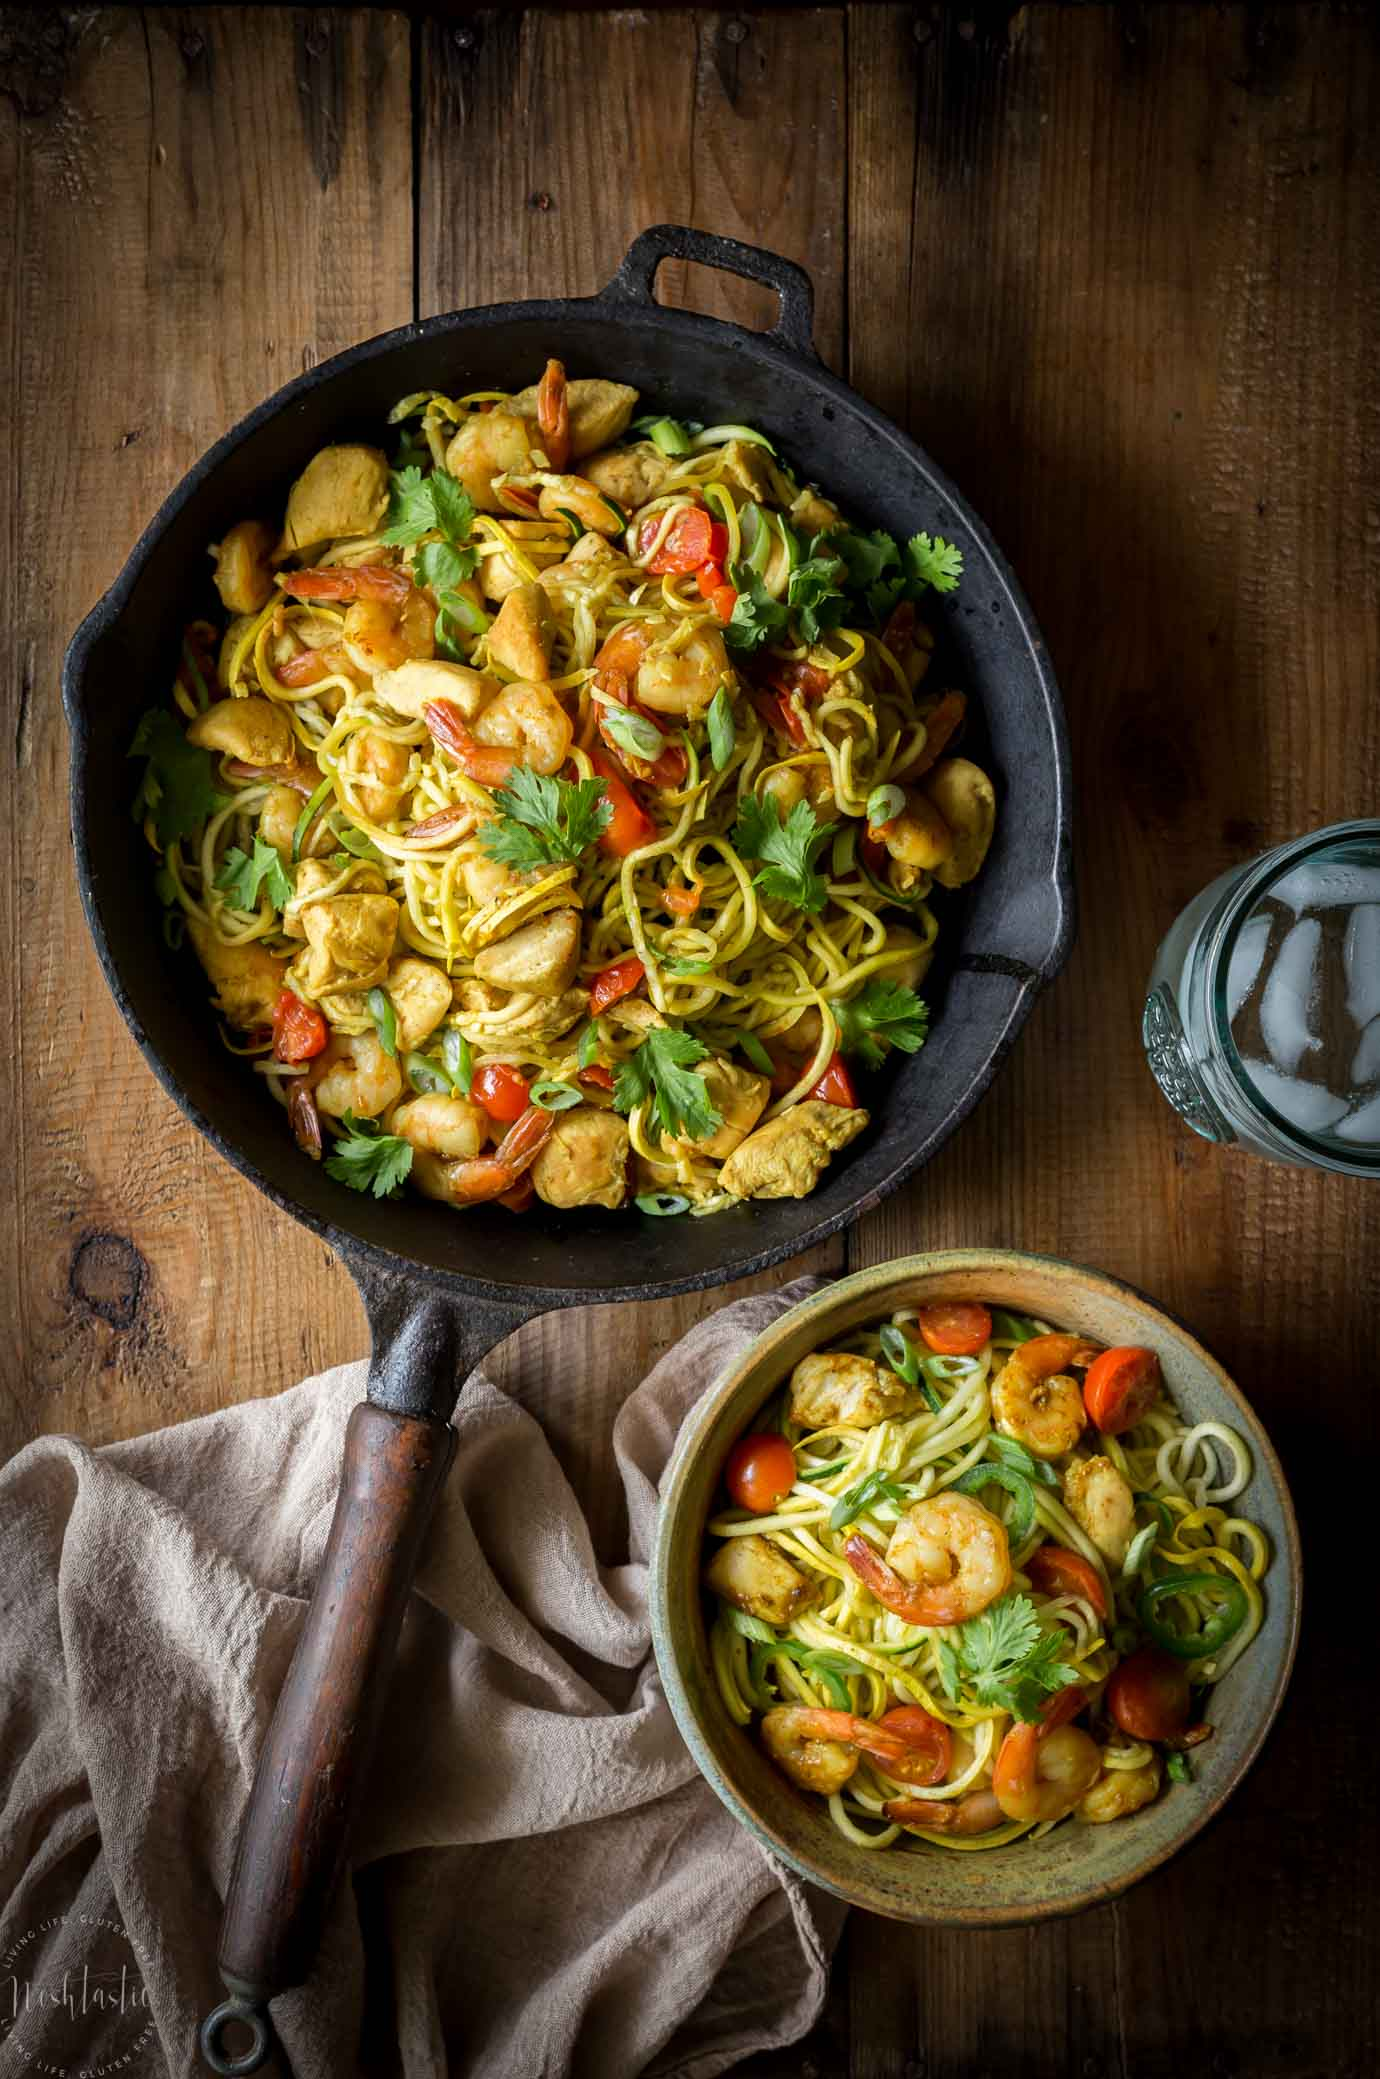 Paleo Singapore Noodles, made with zucchini noodles, shrimp, chicken and tasty mild curry flavored sauce with added turmeric! Gluten free, healthy and low carb with Whole30 options